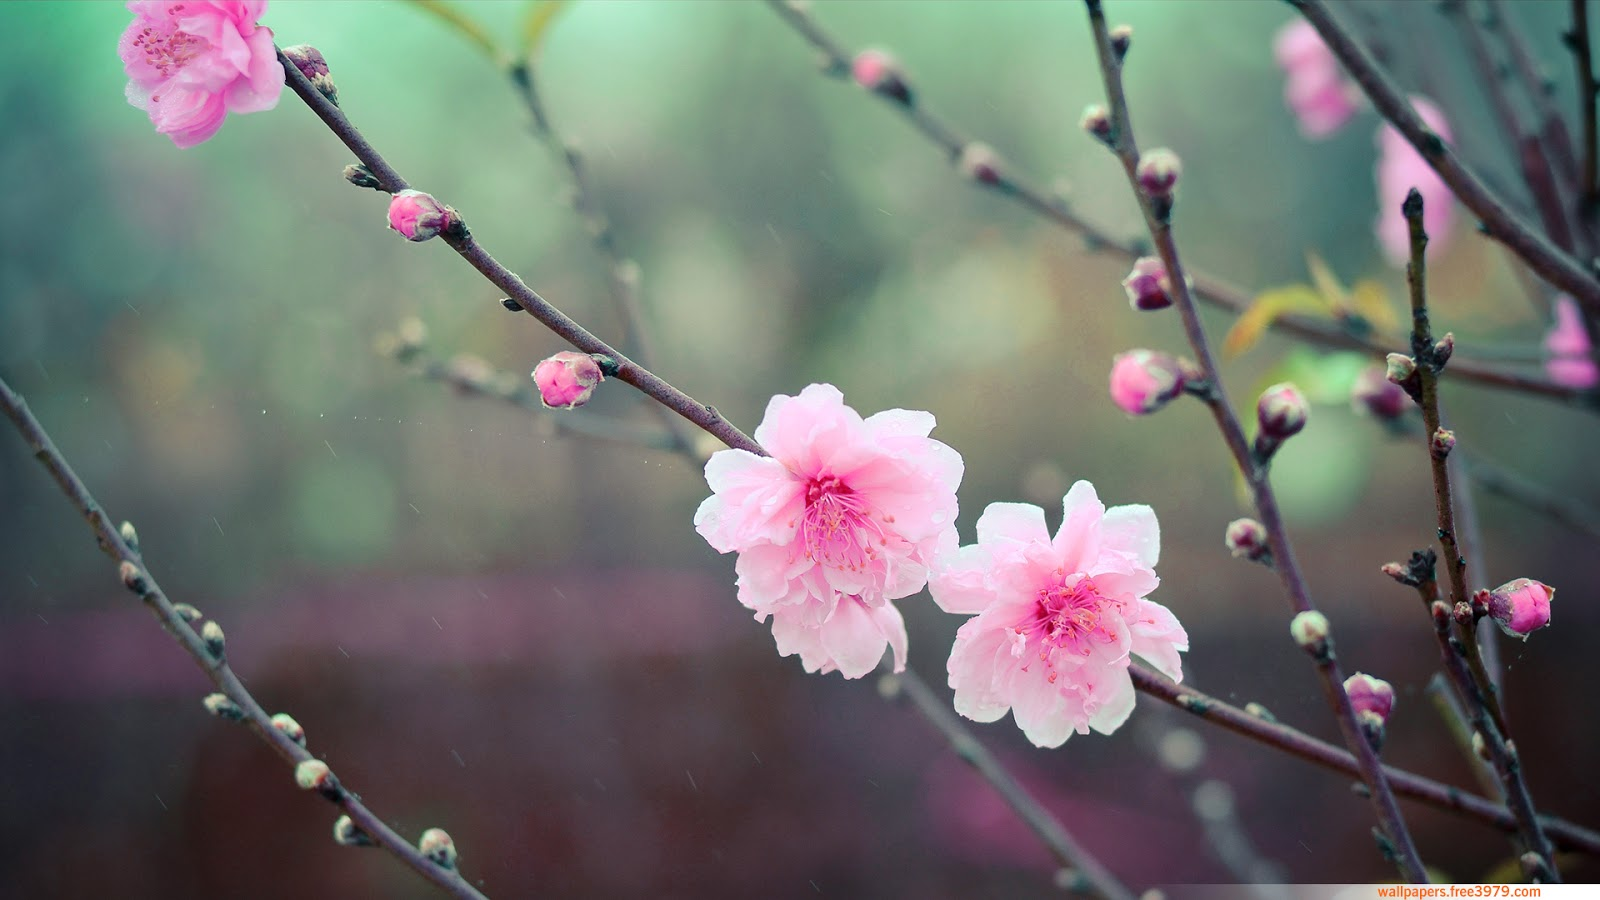 Free Download Japanese Cherry Blossom Wallpaper For Walls Viewing Gallery 1600x900 For Your Desktop Mobile Tablet Explore 67 Cherry Blossom Wallpapers Cherry Blossom Wallpaper For Walls Anime Cherry Blossom Wallpaper